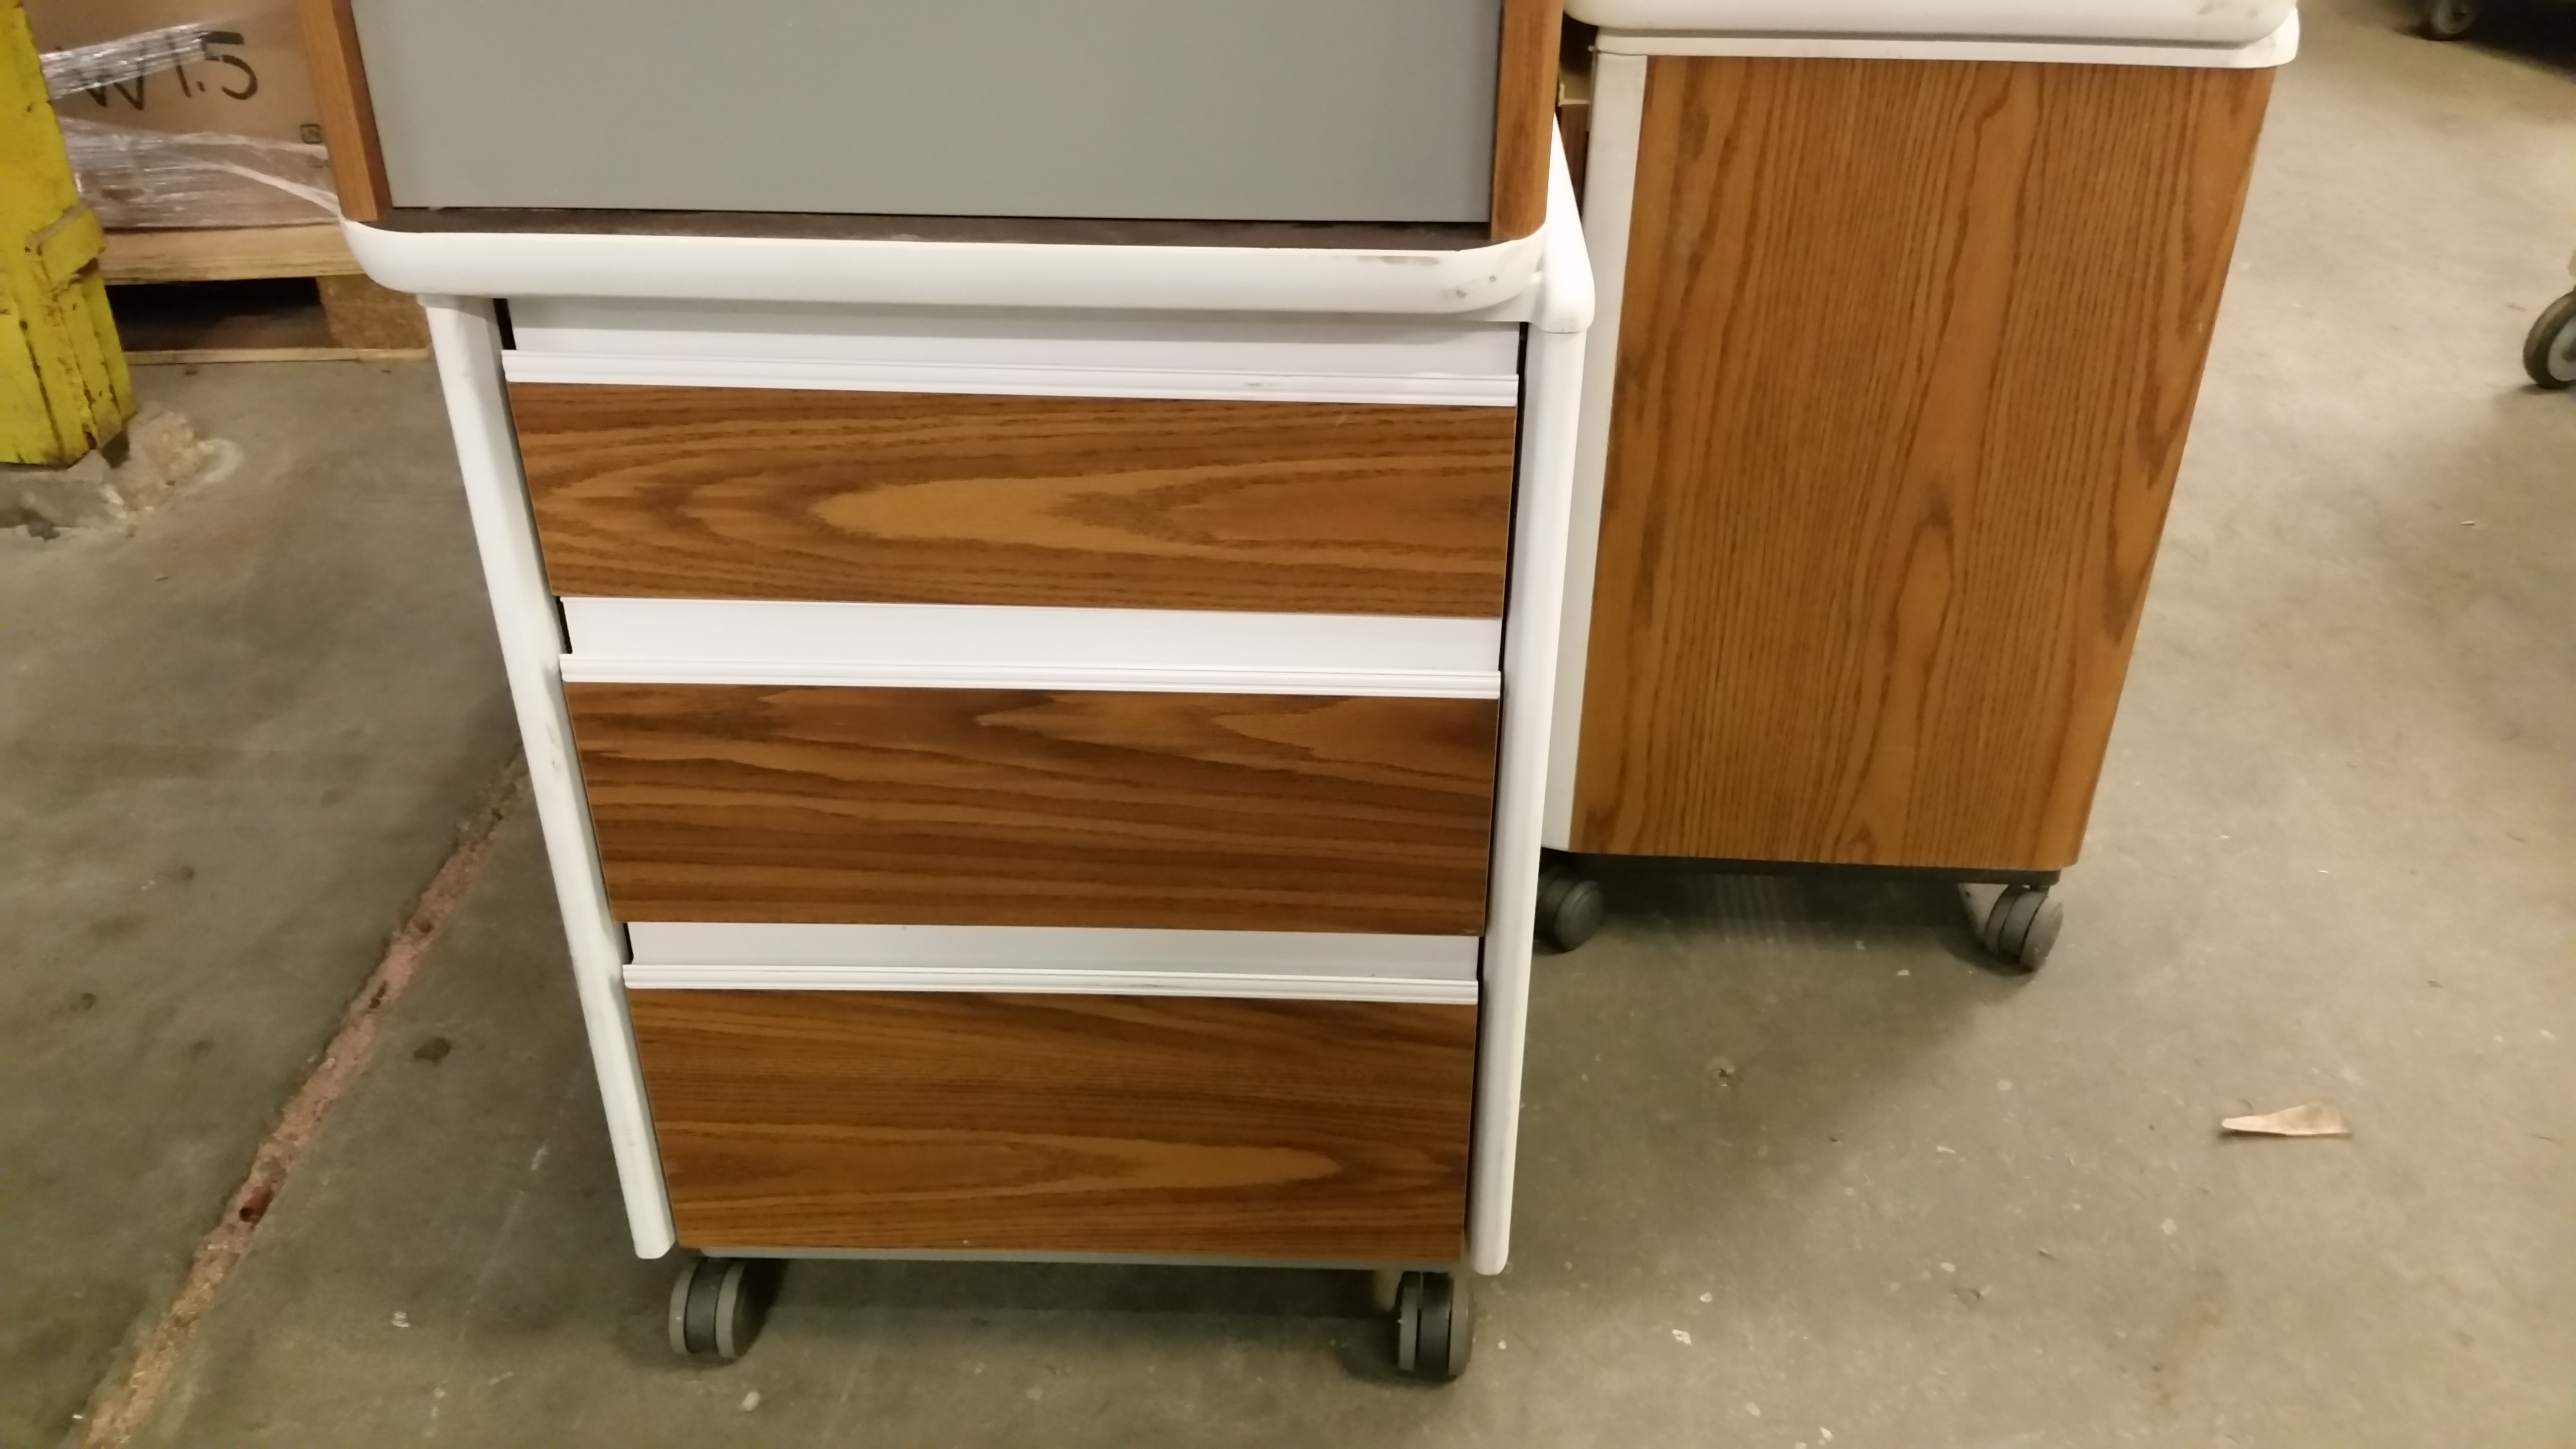 Side Bed Cabinets Hospital Direct Medical Inc